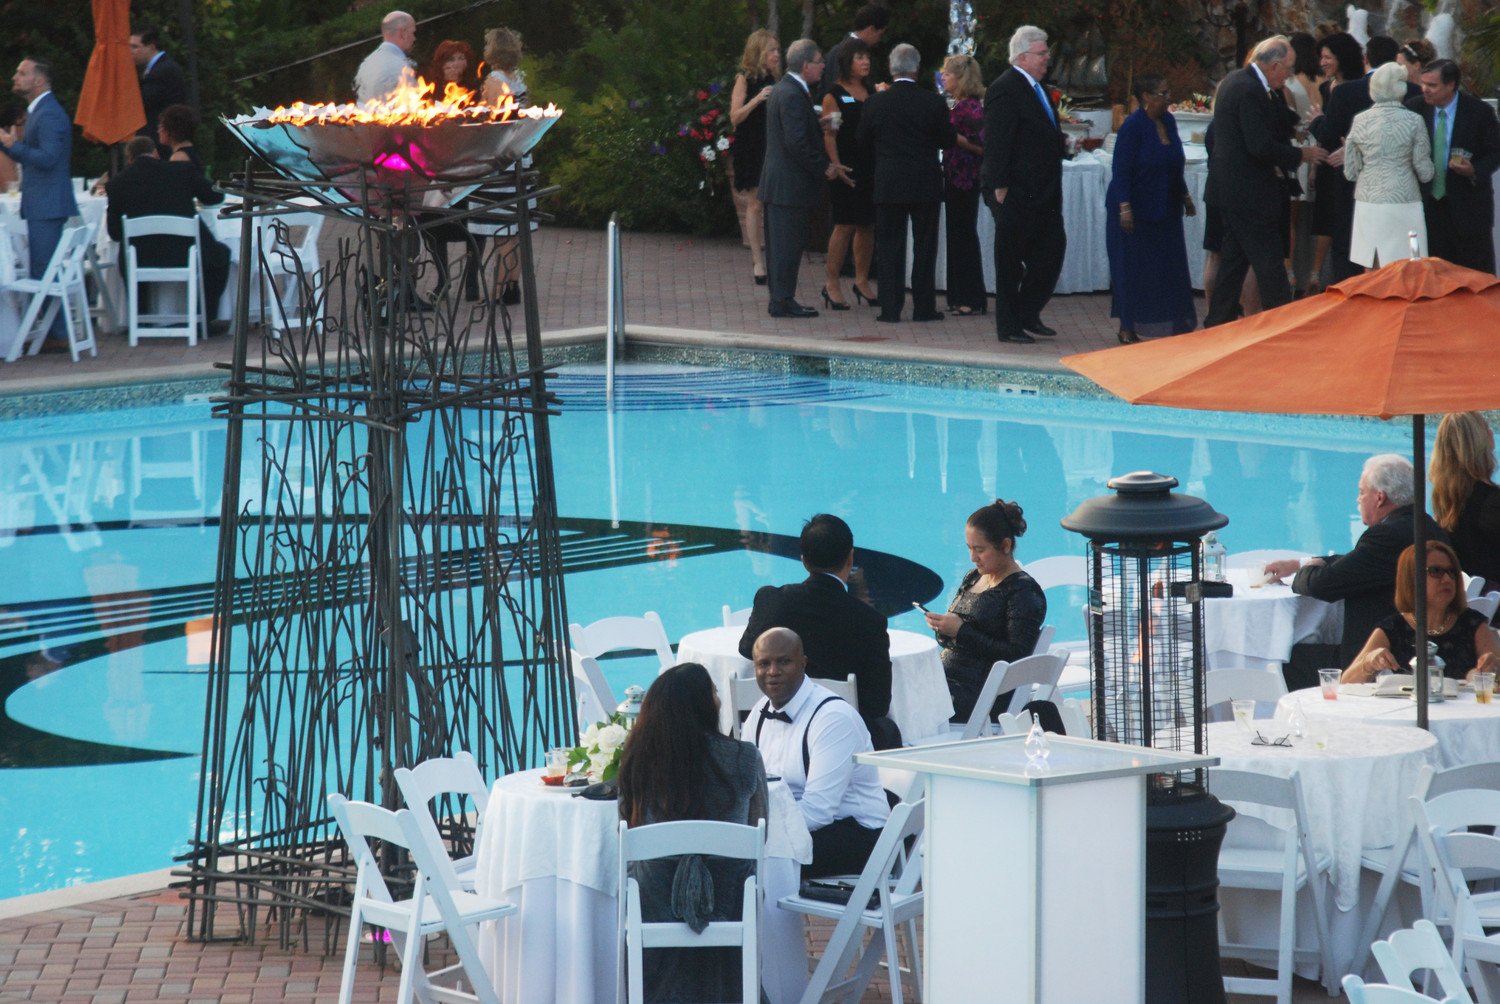 Poolside dining made for an elegant affair.